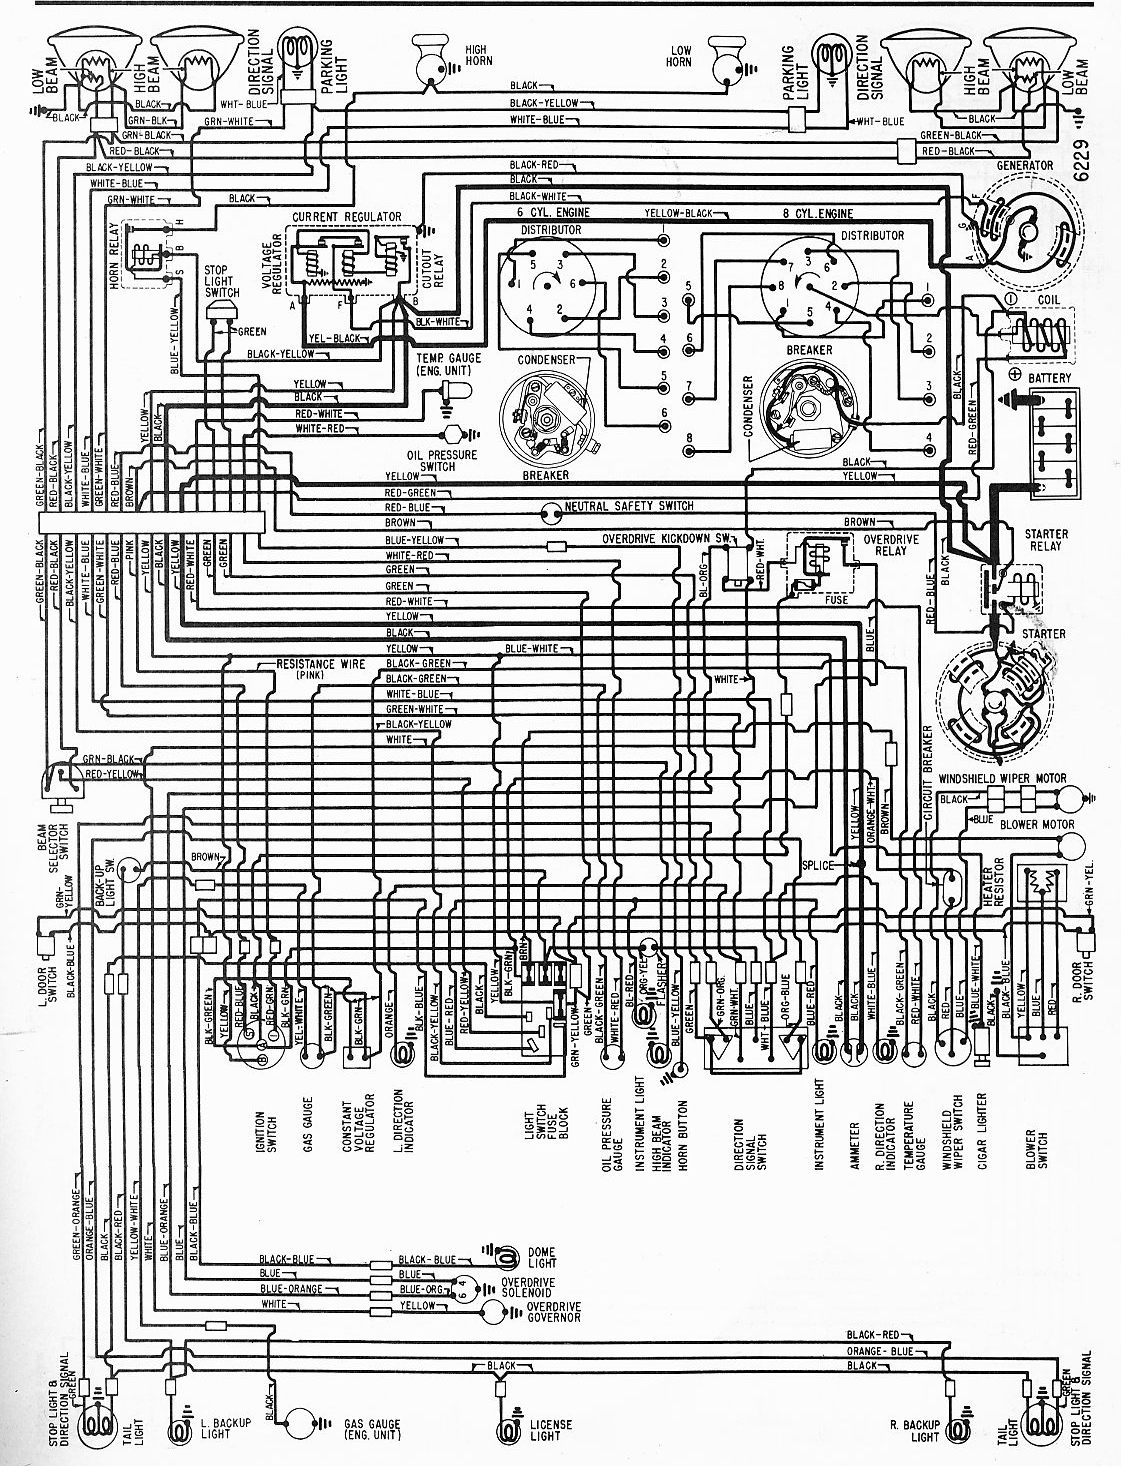 1973 Ford F 250 Wiring Diagram Archive Of Automotive 1972 Catalina Schematic Schematics Starting Know About U2022 Rh Prezzy Co